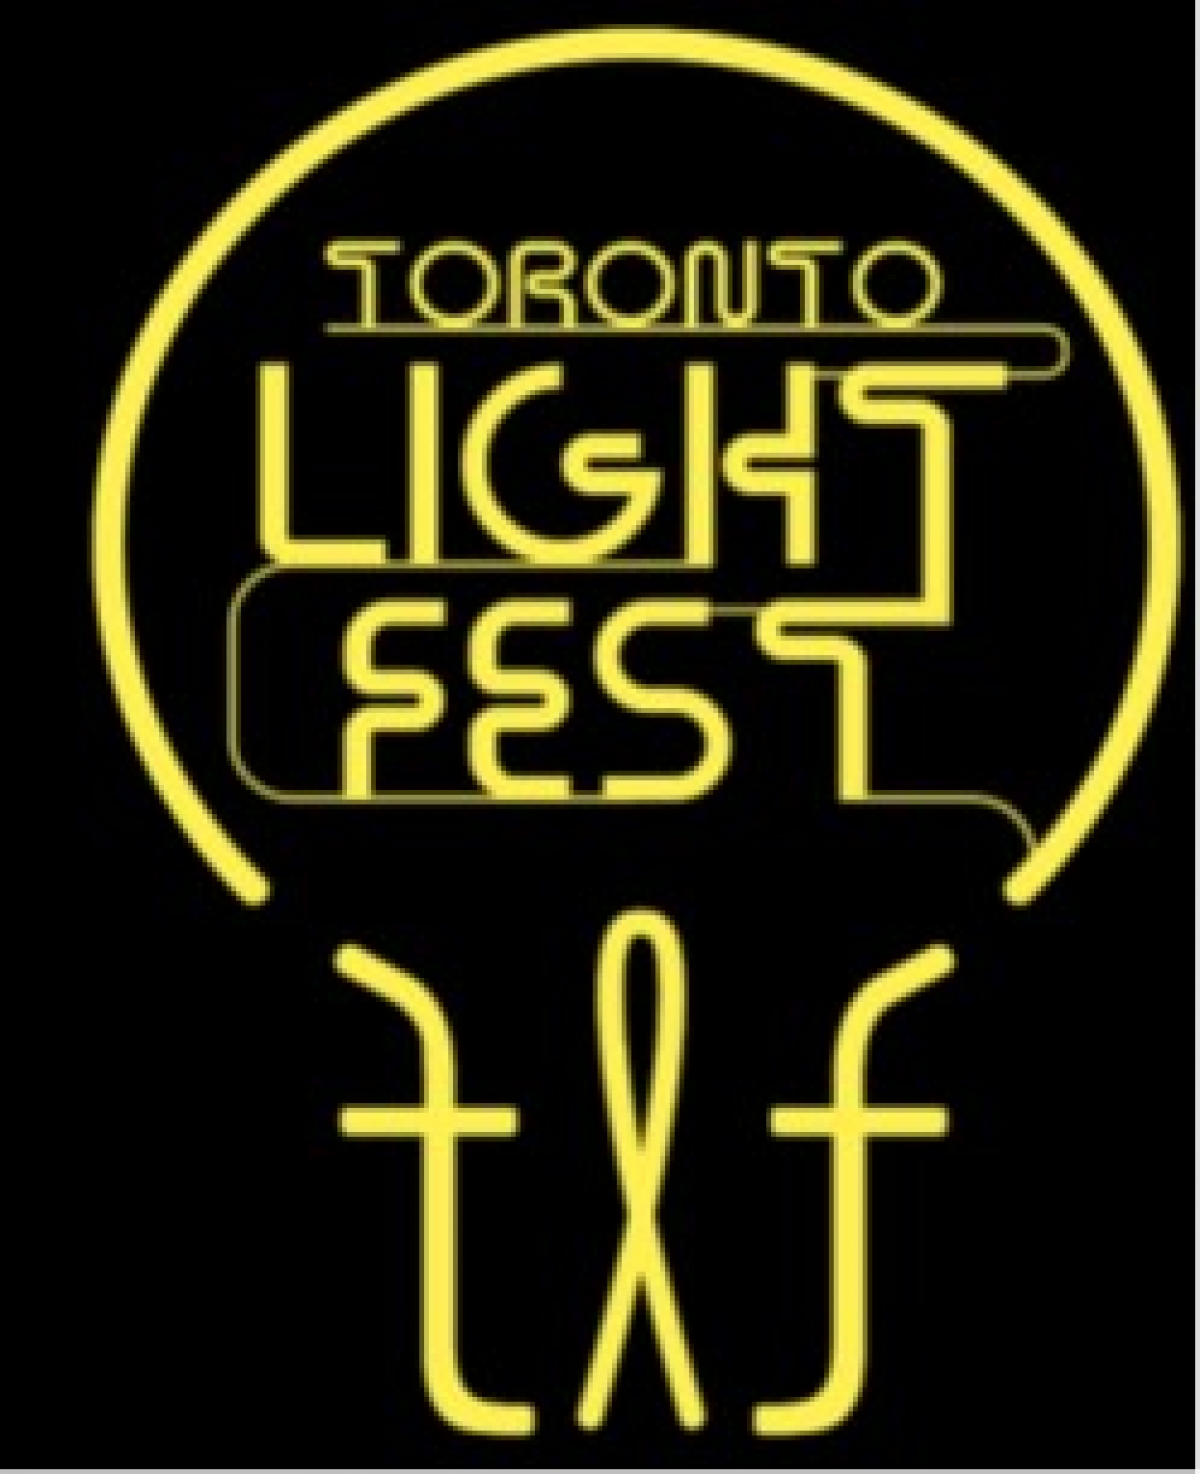 Toronto Light Festival January 17 – March 1, 2020